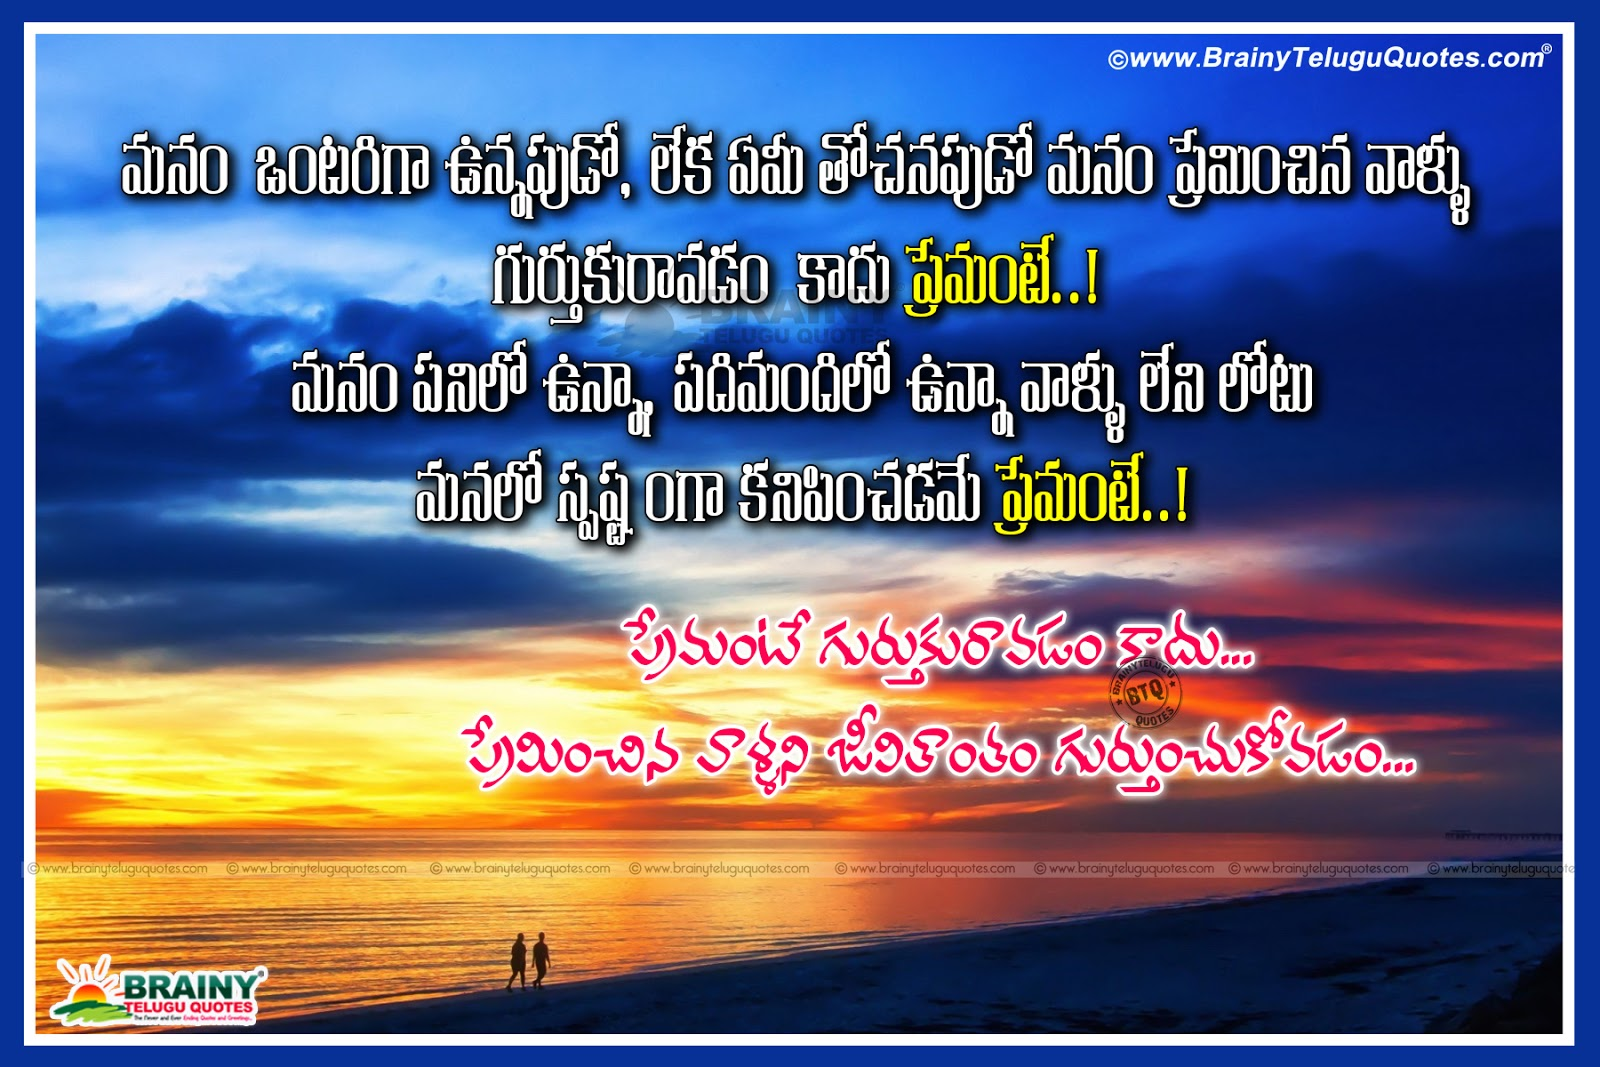 Love Feeling Quotes In Telugu: True Meaning Of Love Quotations In Telugu-Telugu Love